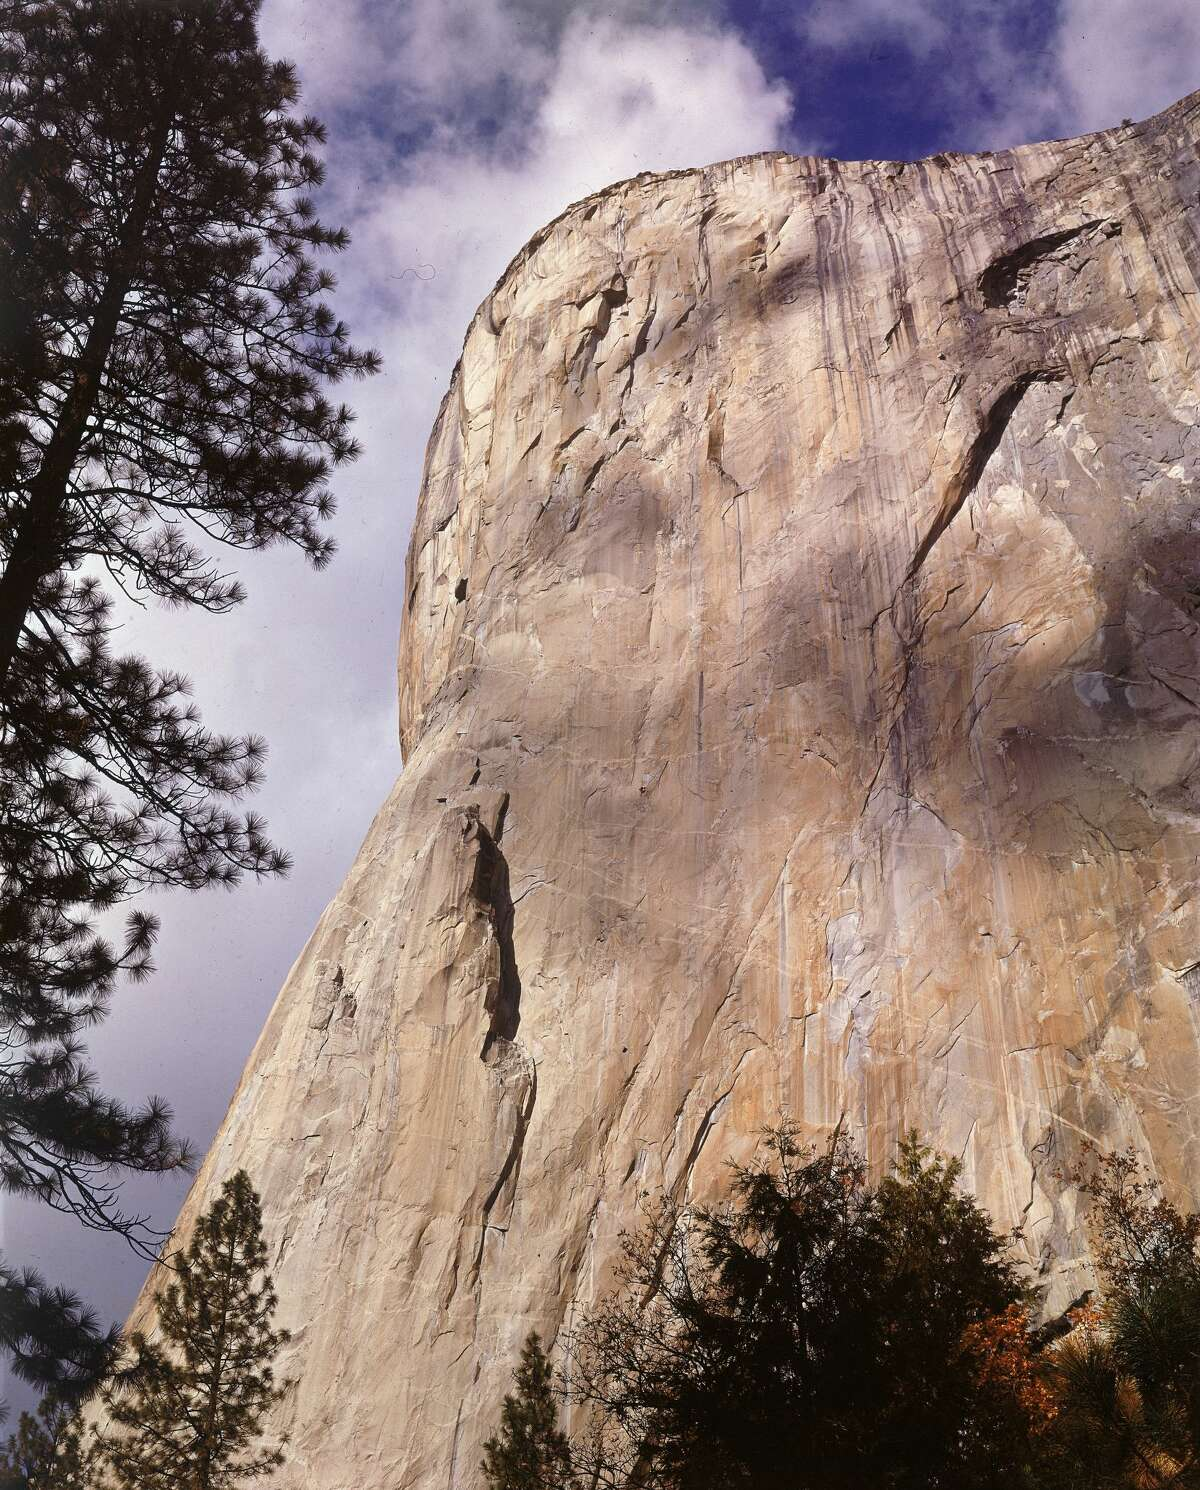 Dean Caldwell and Warren Harding appear as specks on the face of Half Dome in Yosemite National Park.